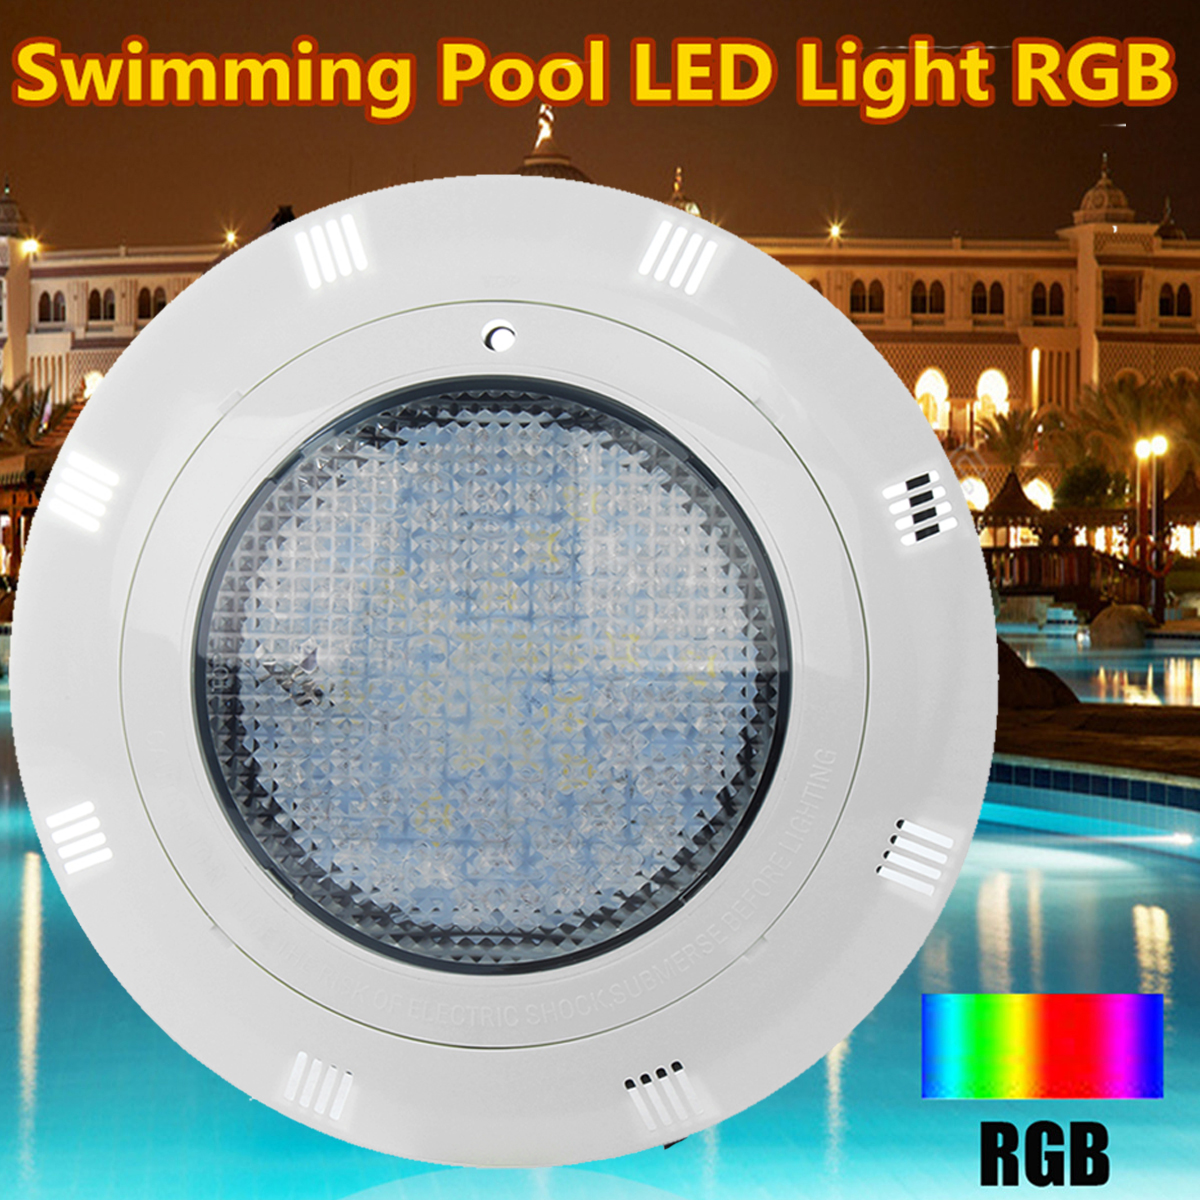 1PC 12V 72W RGB 7 Color LED Swimming Pool IP68 Underwater Light Bright Wall Mounted Pond Lighting + Remote Control1PC 12V 72W RGB 7 Color LED Swimming Pool IP68 Underwater Light Bright Wall Mounted Pond Lighting + Remote Control